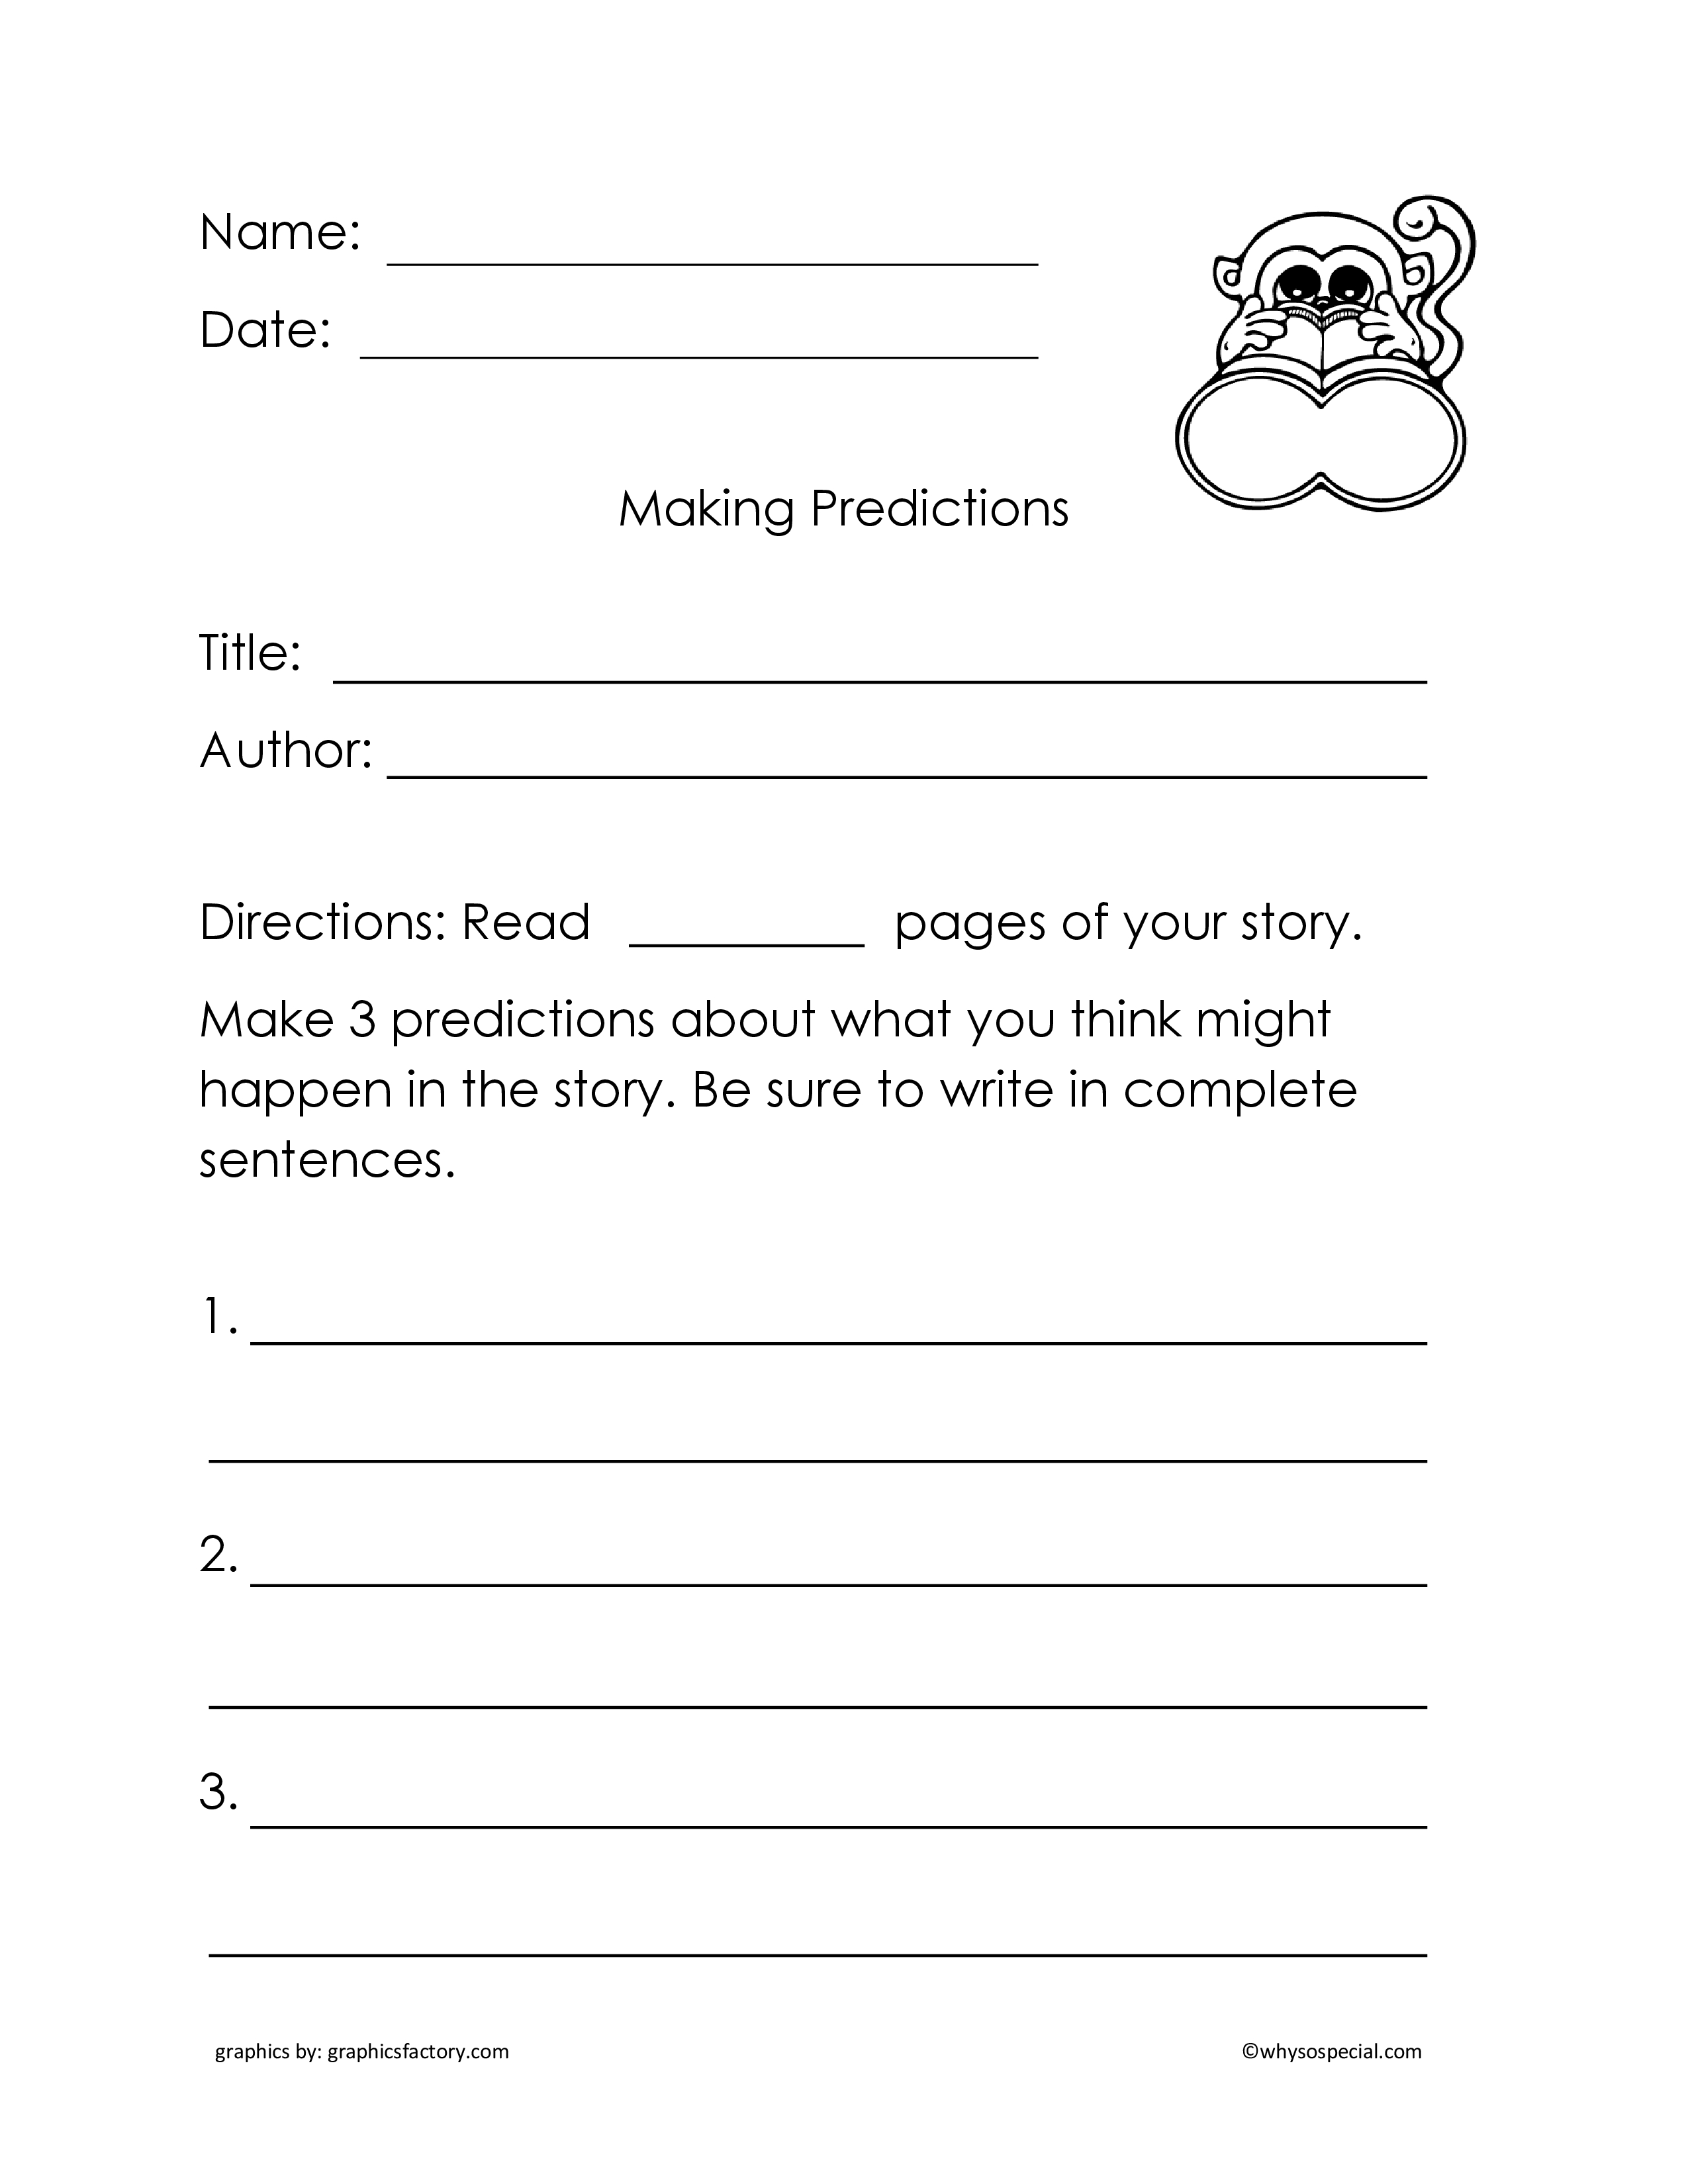 13 Best Images Of Making Predictions Worksheets 3rd Grade